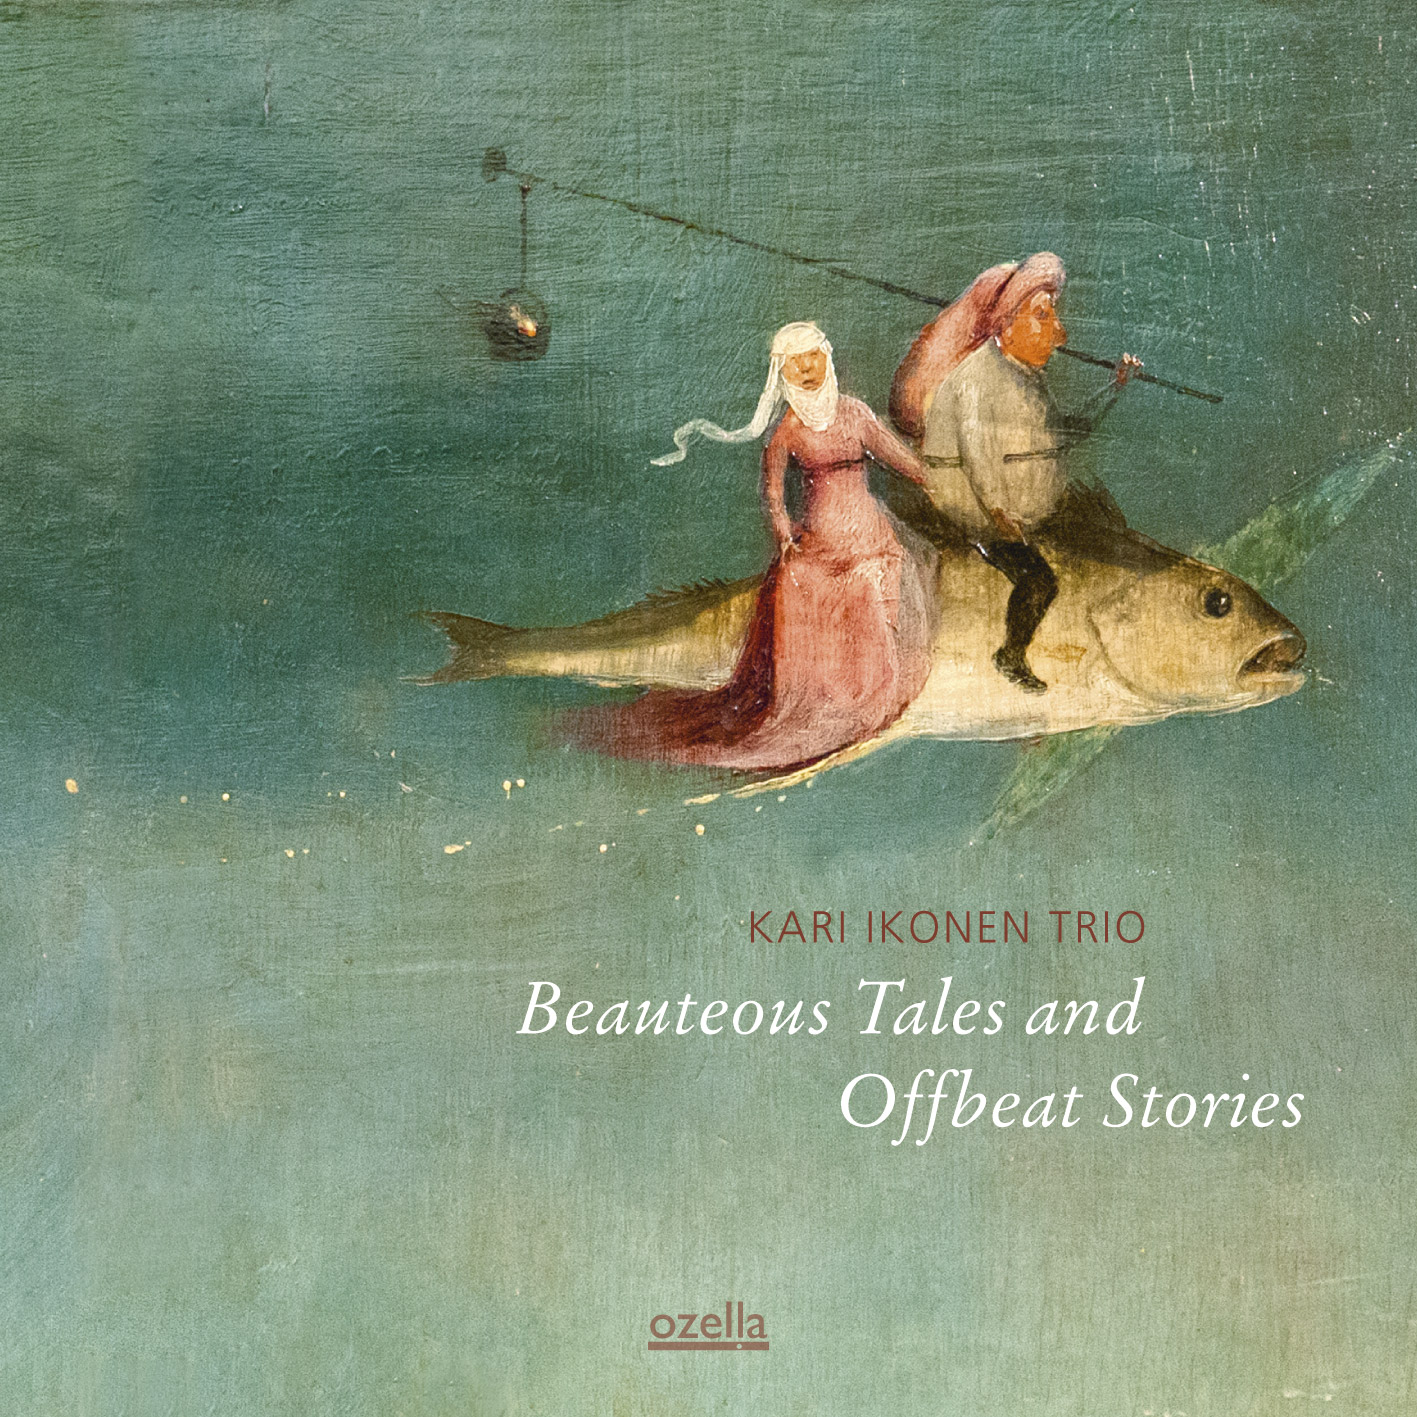 Kari Ikonen Trio: Beauteous Tales and Offbeat Stories (LP) 【予約受付中】